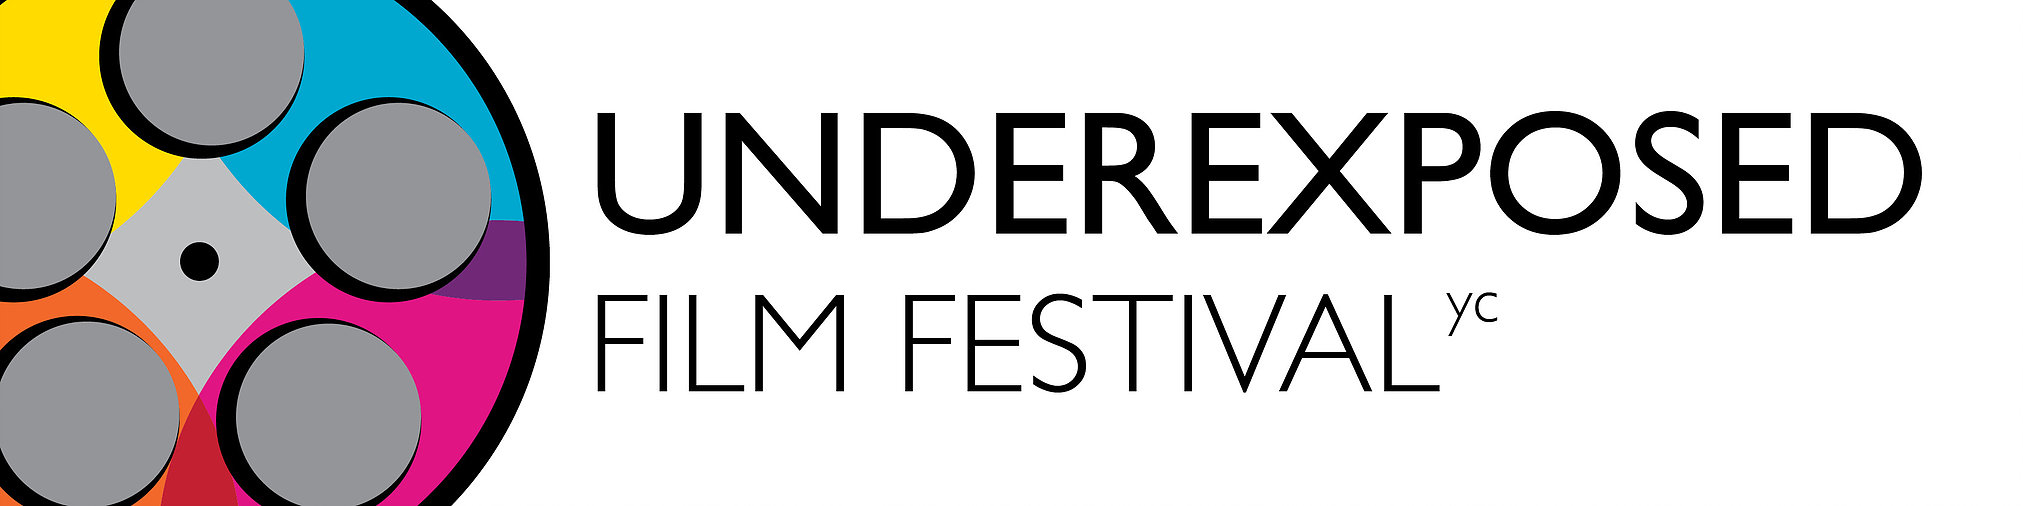 underexposed-logo.jpg